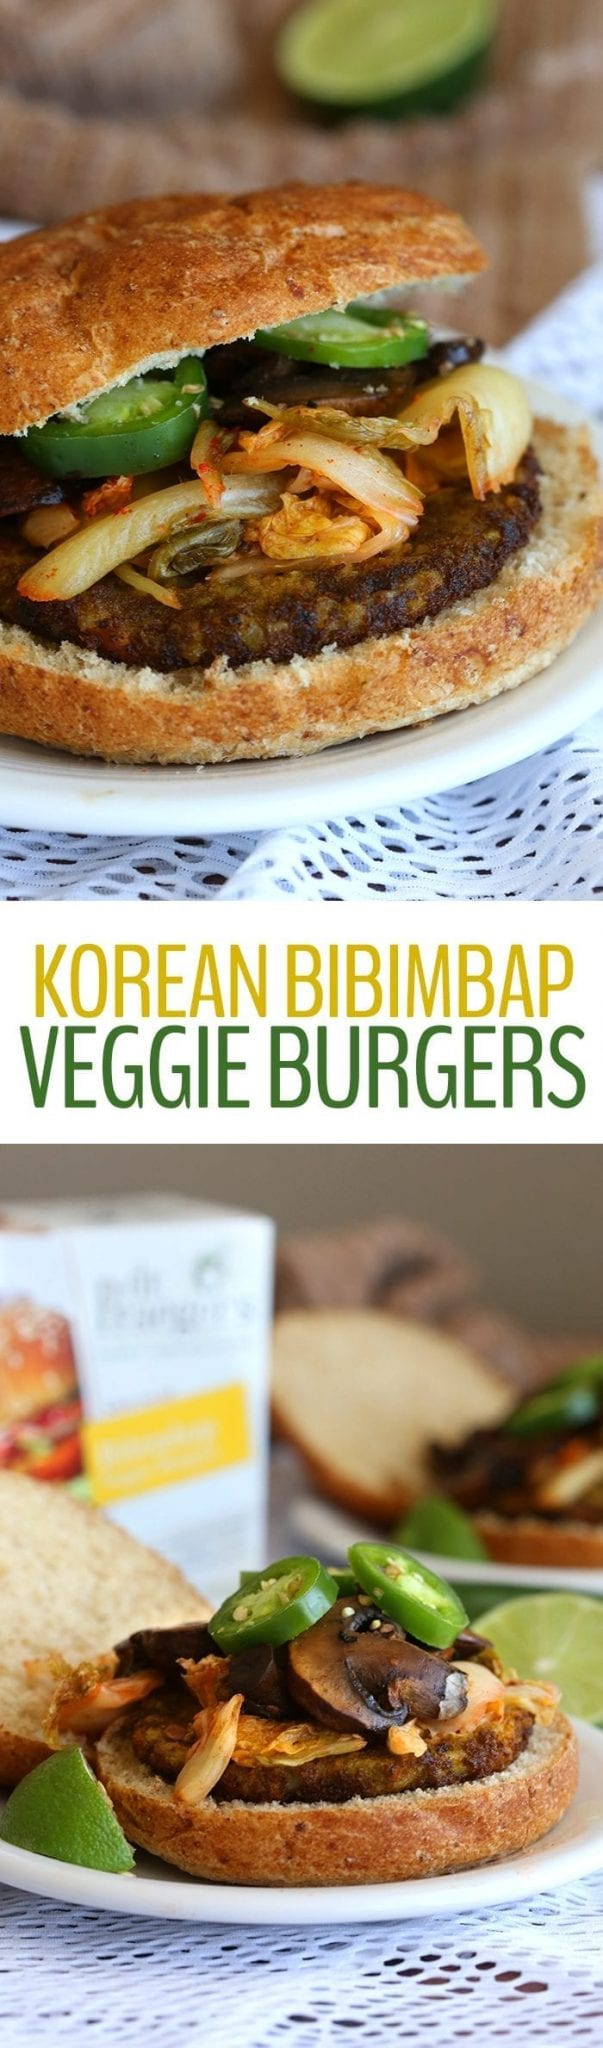 These Korean Veggie Burgers made for a flavorful and asian-inspired meal for a quick weeknight dinner. With Bibimbap burgers, kimchi and bulgogi mushrooms, plant-based eating just got even more delicious!